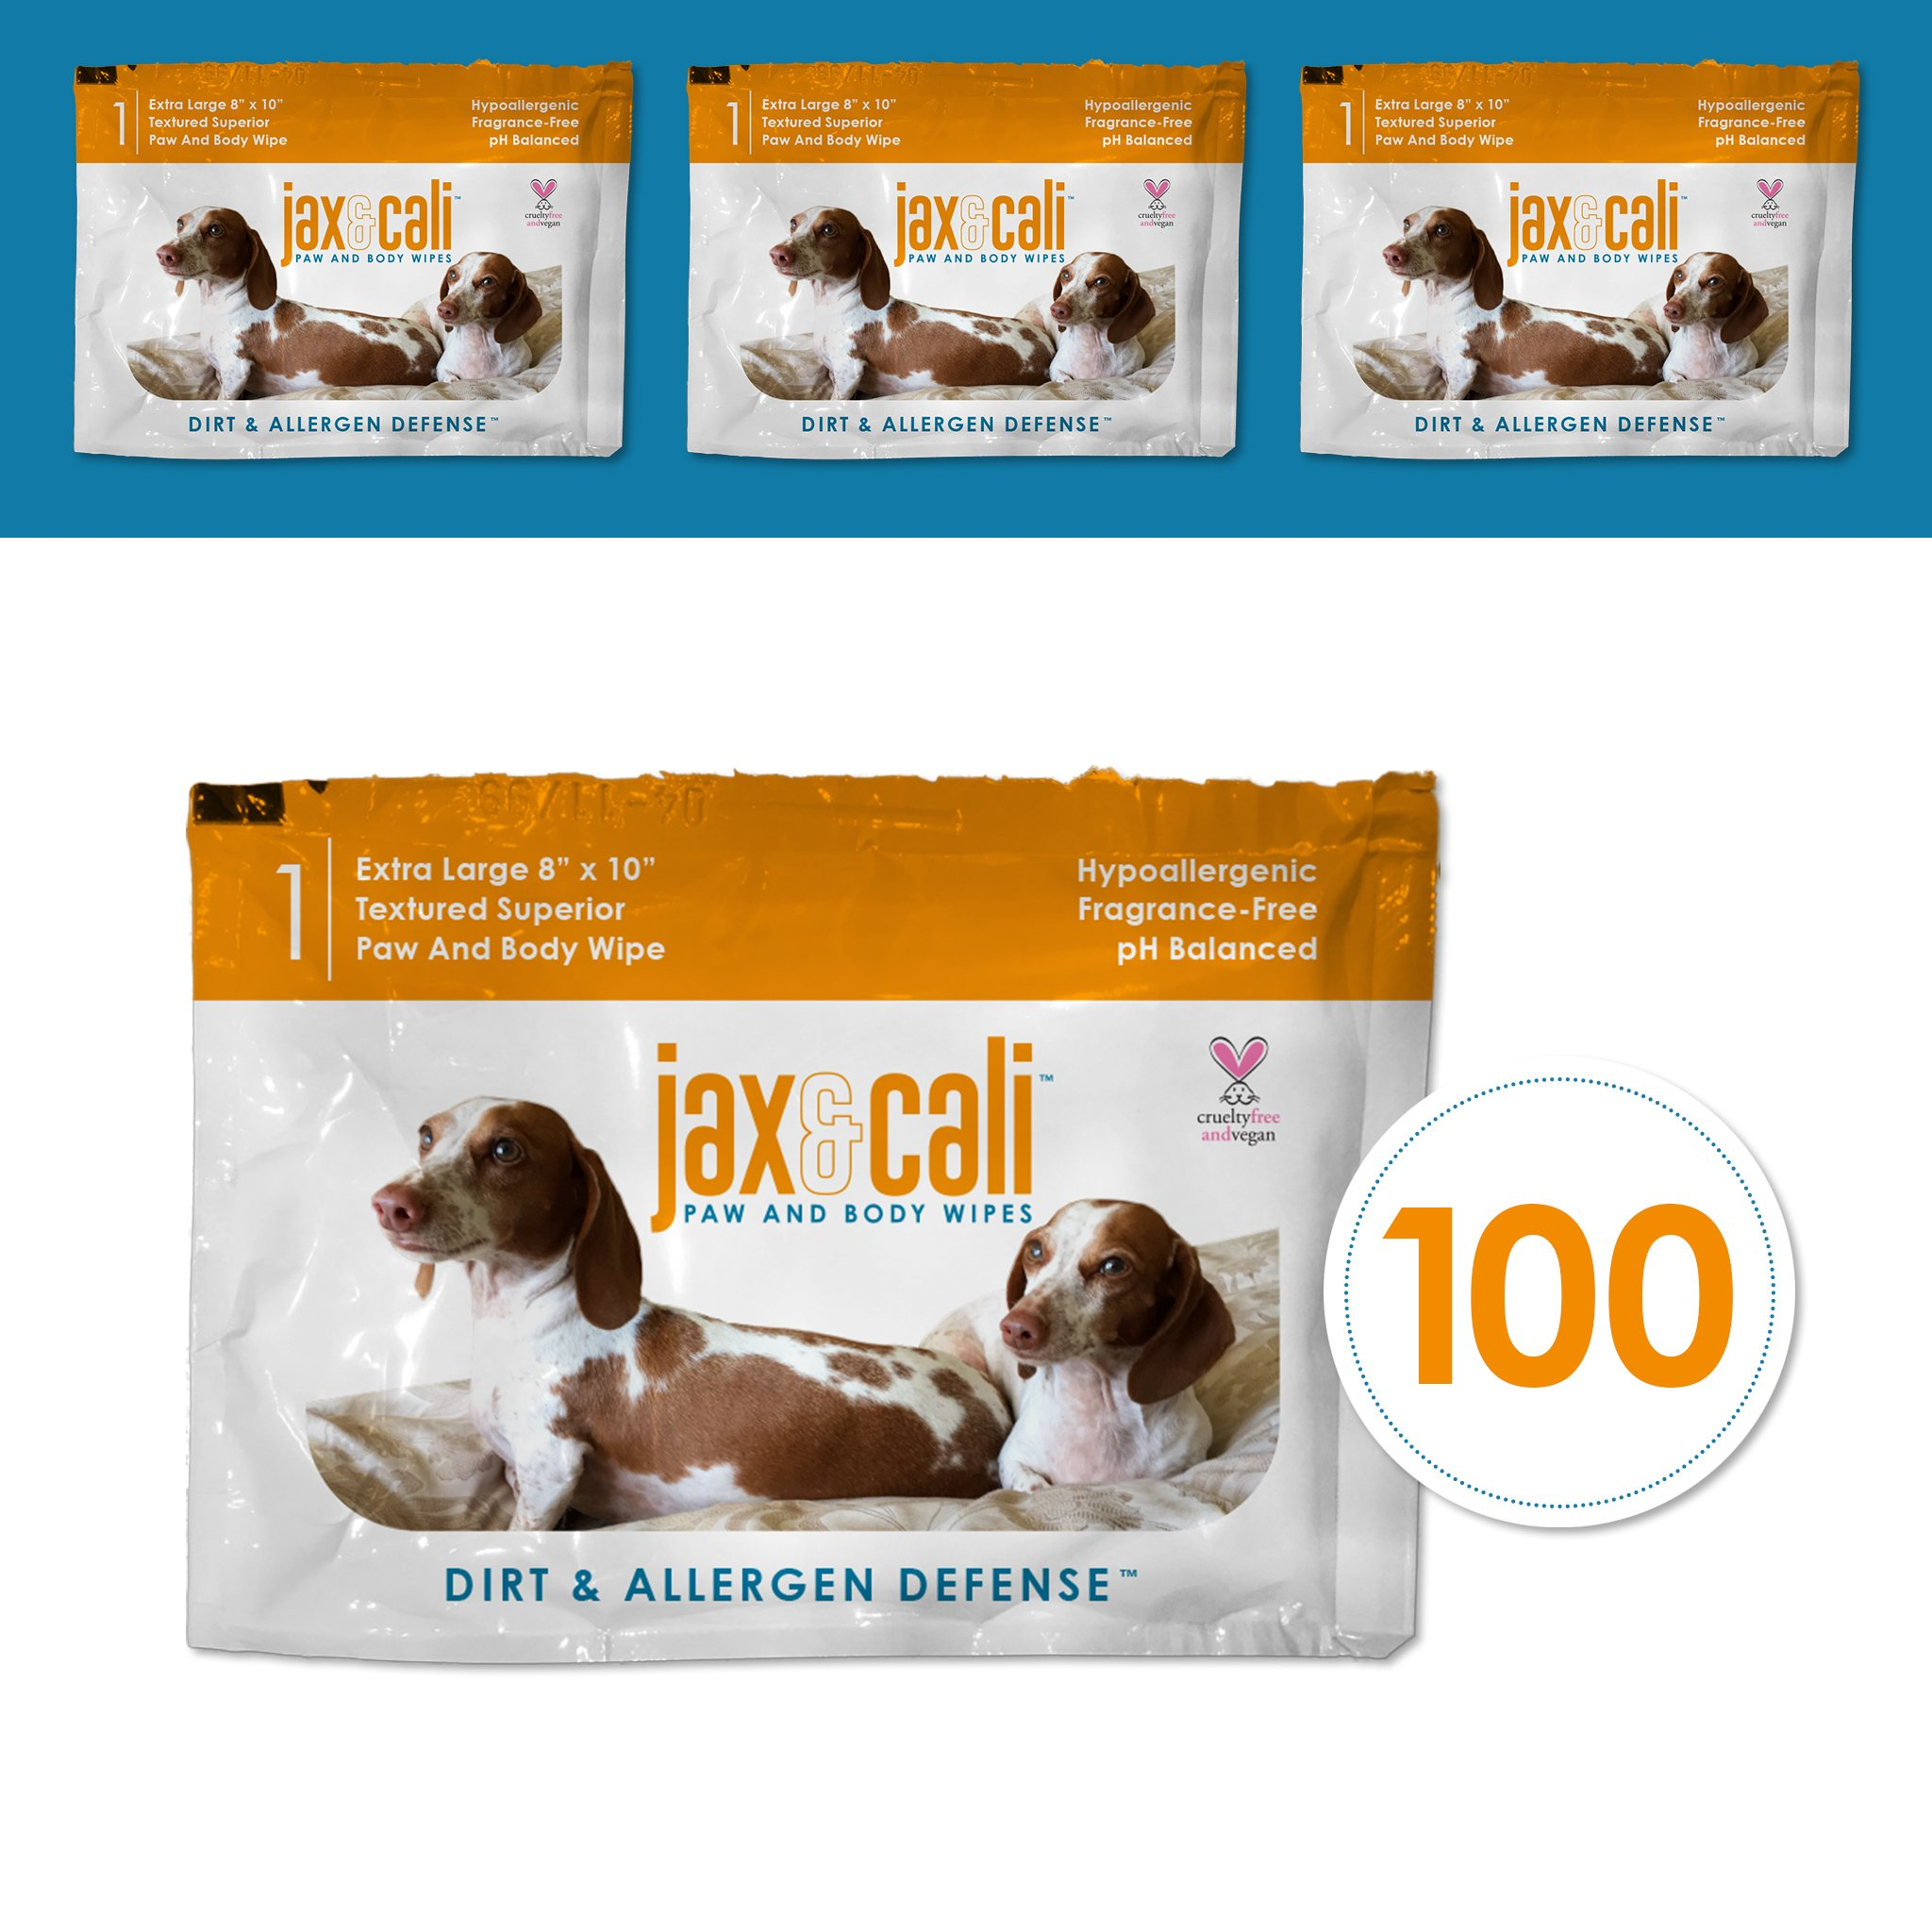 JAX & CALI All-Natural Extra Large Pet Wipes - All Natural Hypo-Allergenic and Vegan Wipes for Dogs and Cats - 8'' x 10'' Superior Textured (100 Individually Wrapped Wipes)